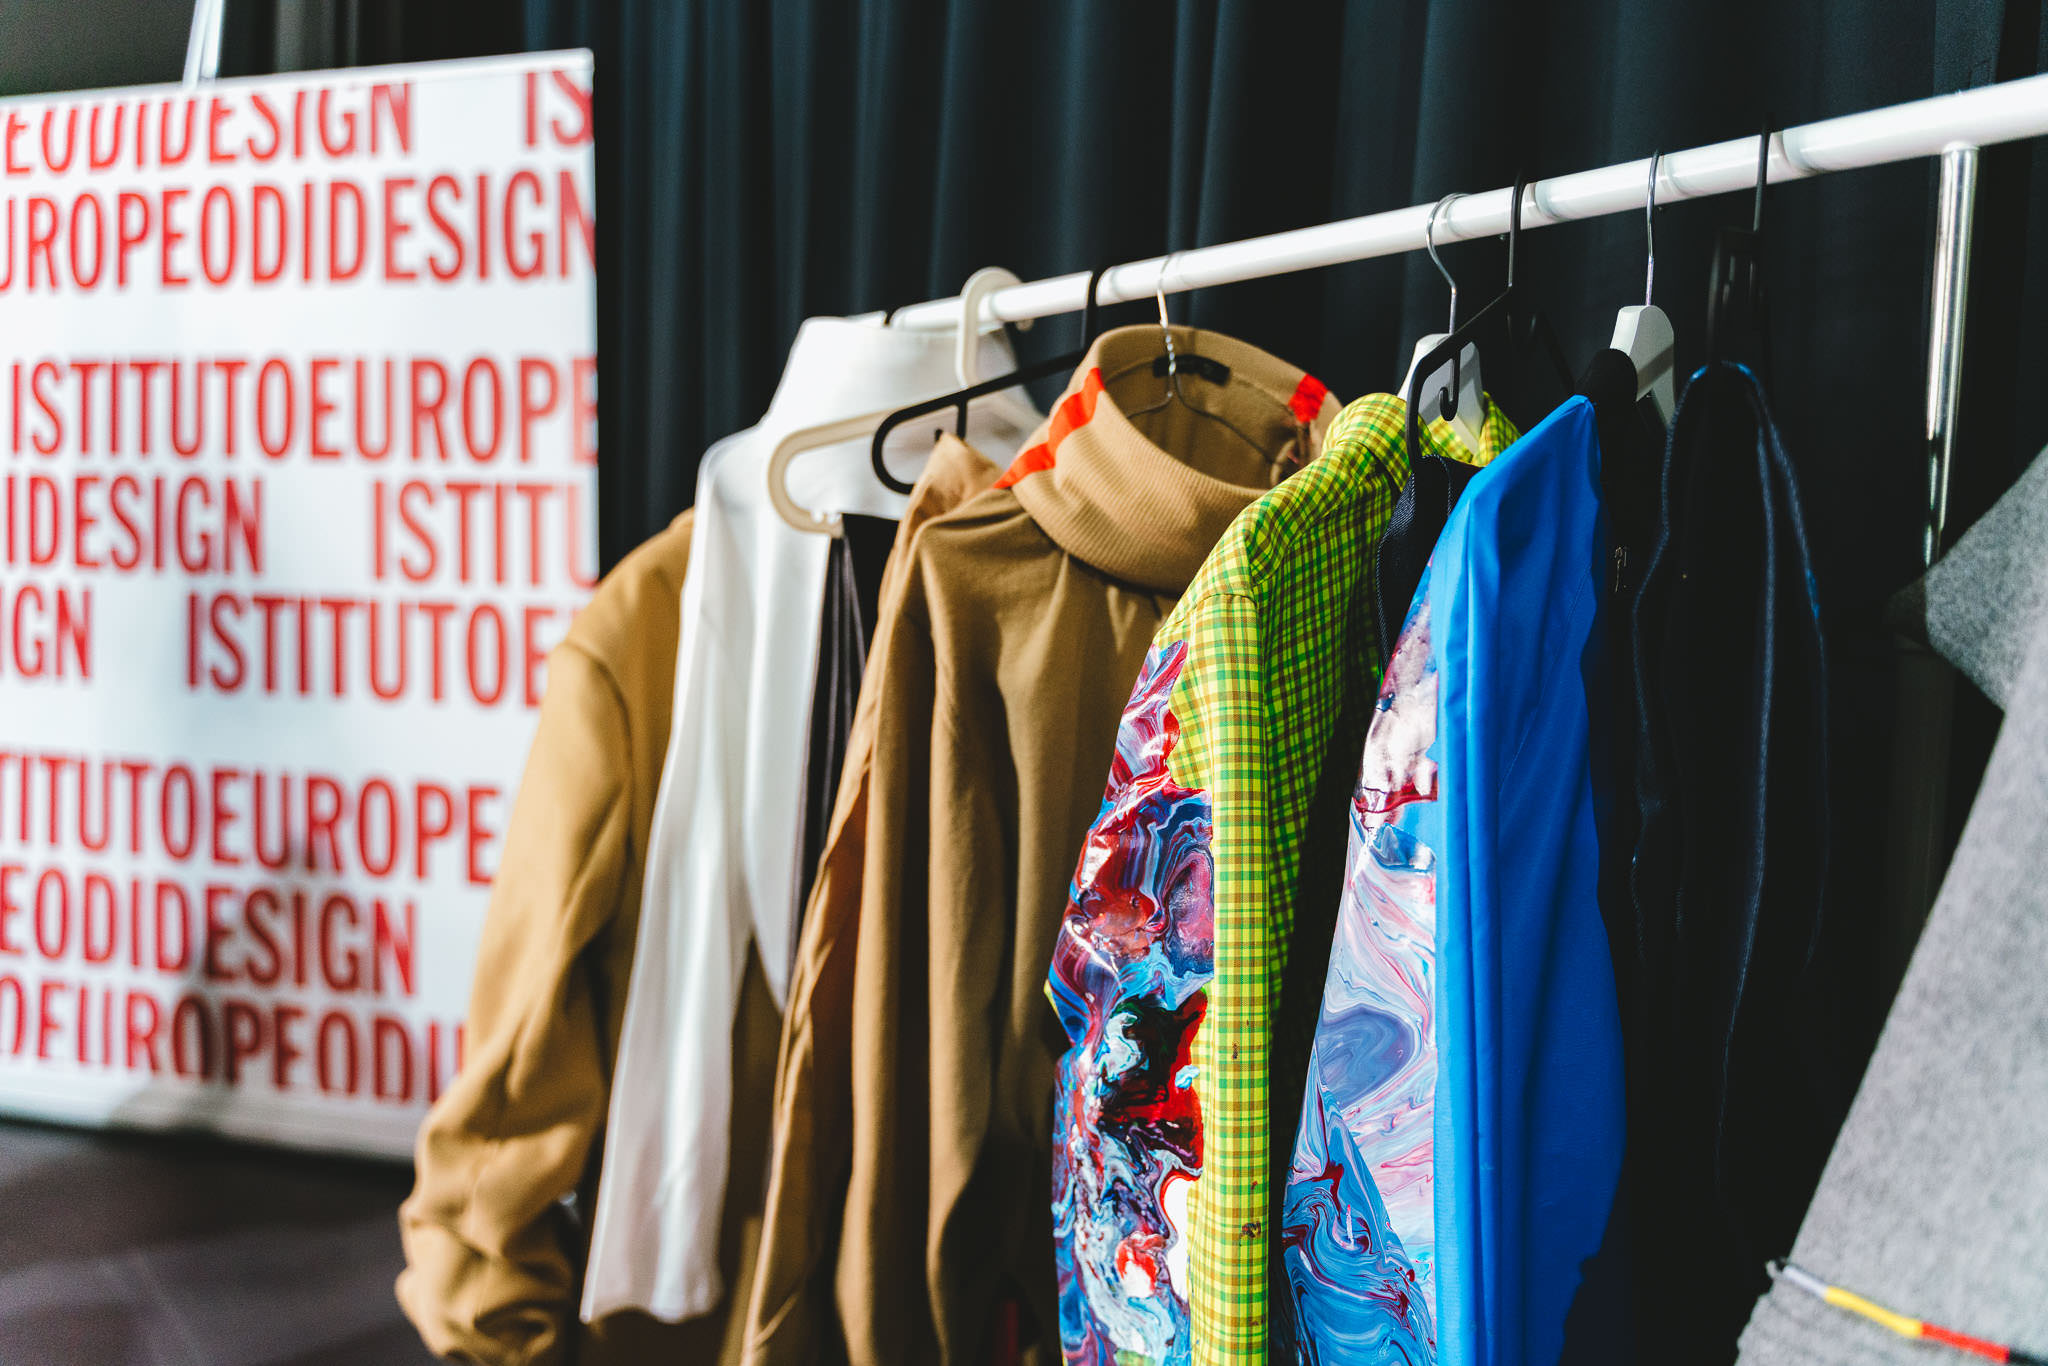 Capsule collection designed by IED students for Pitti Uomo.